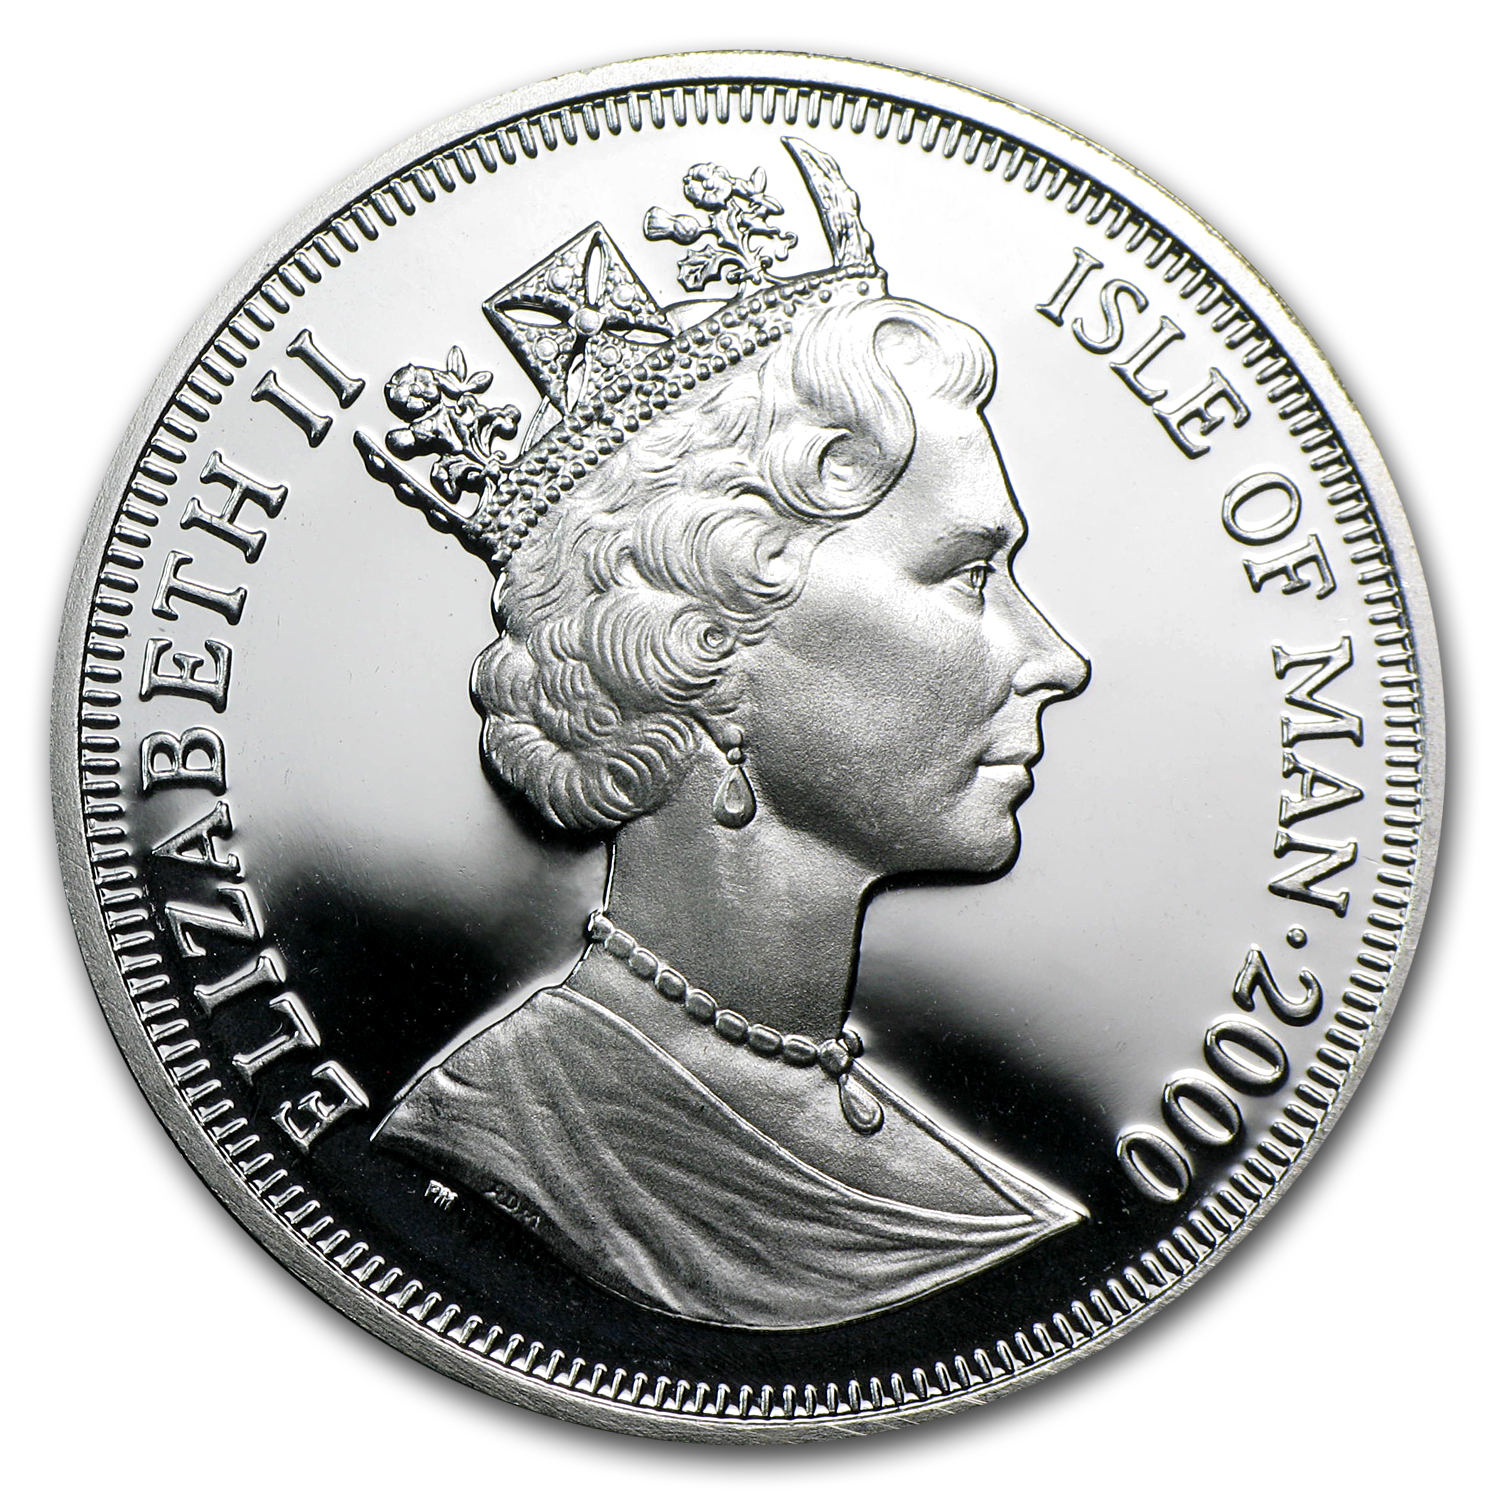 2000 Isle of Man Silver 1 Crown Proof (Millennium)